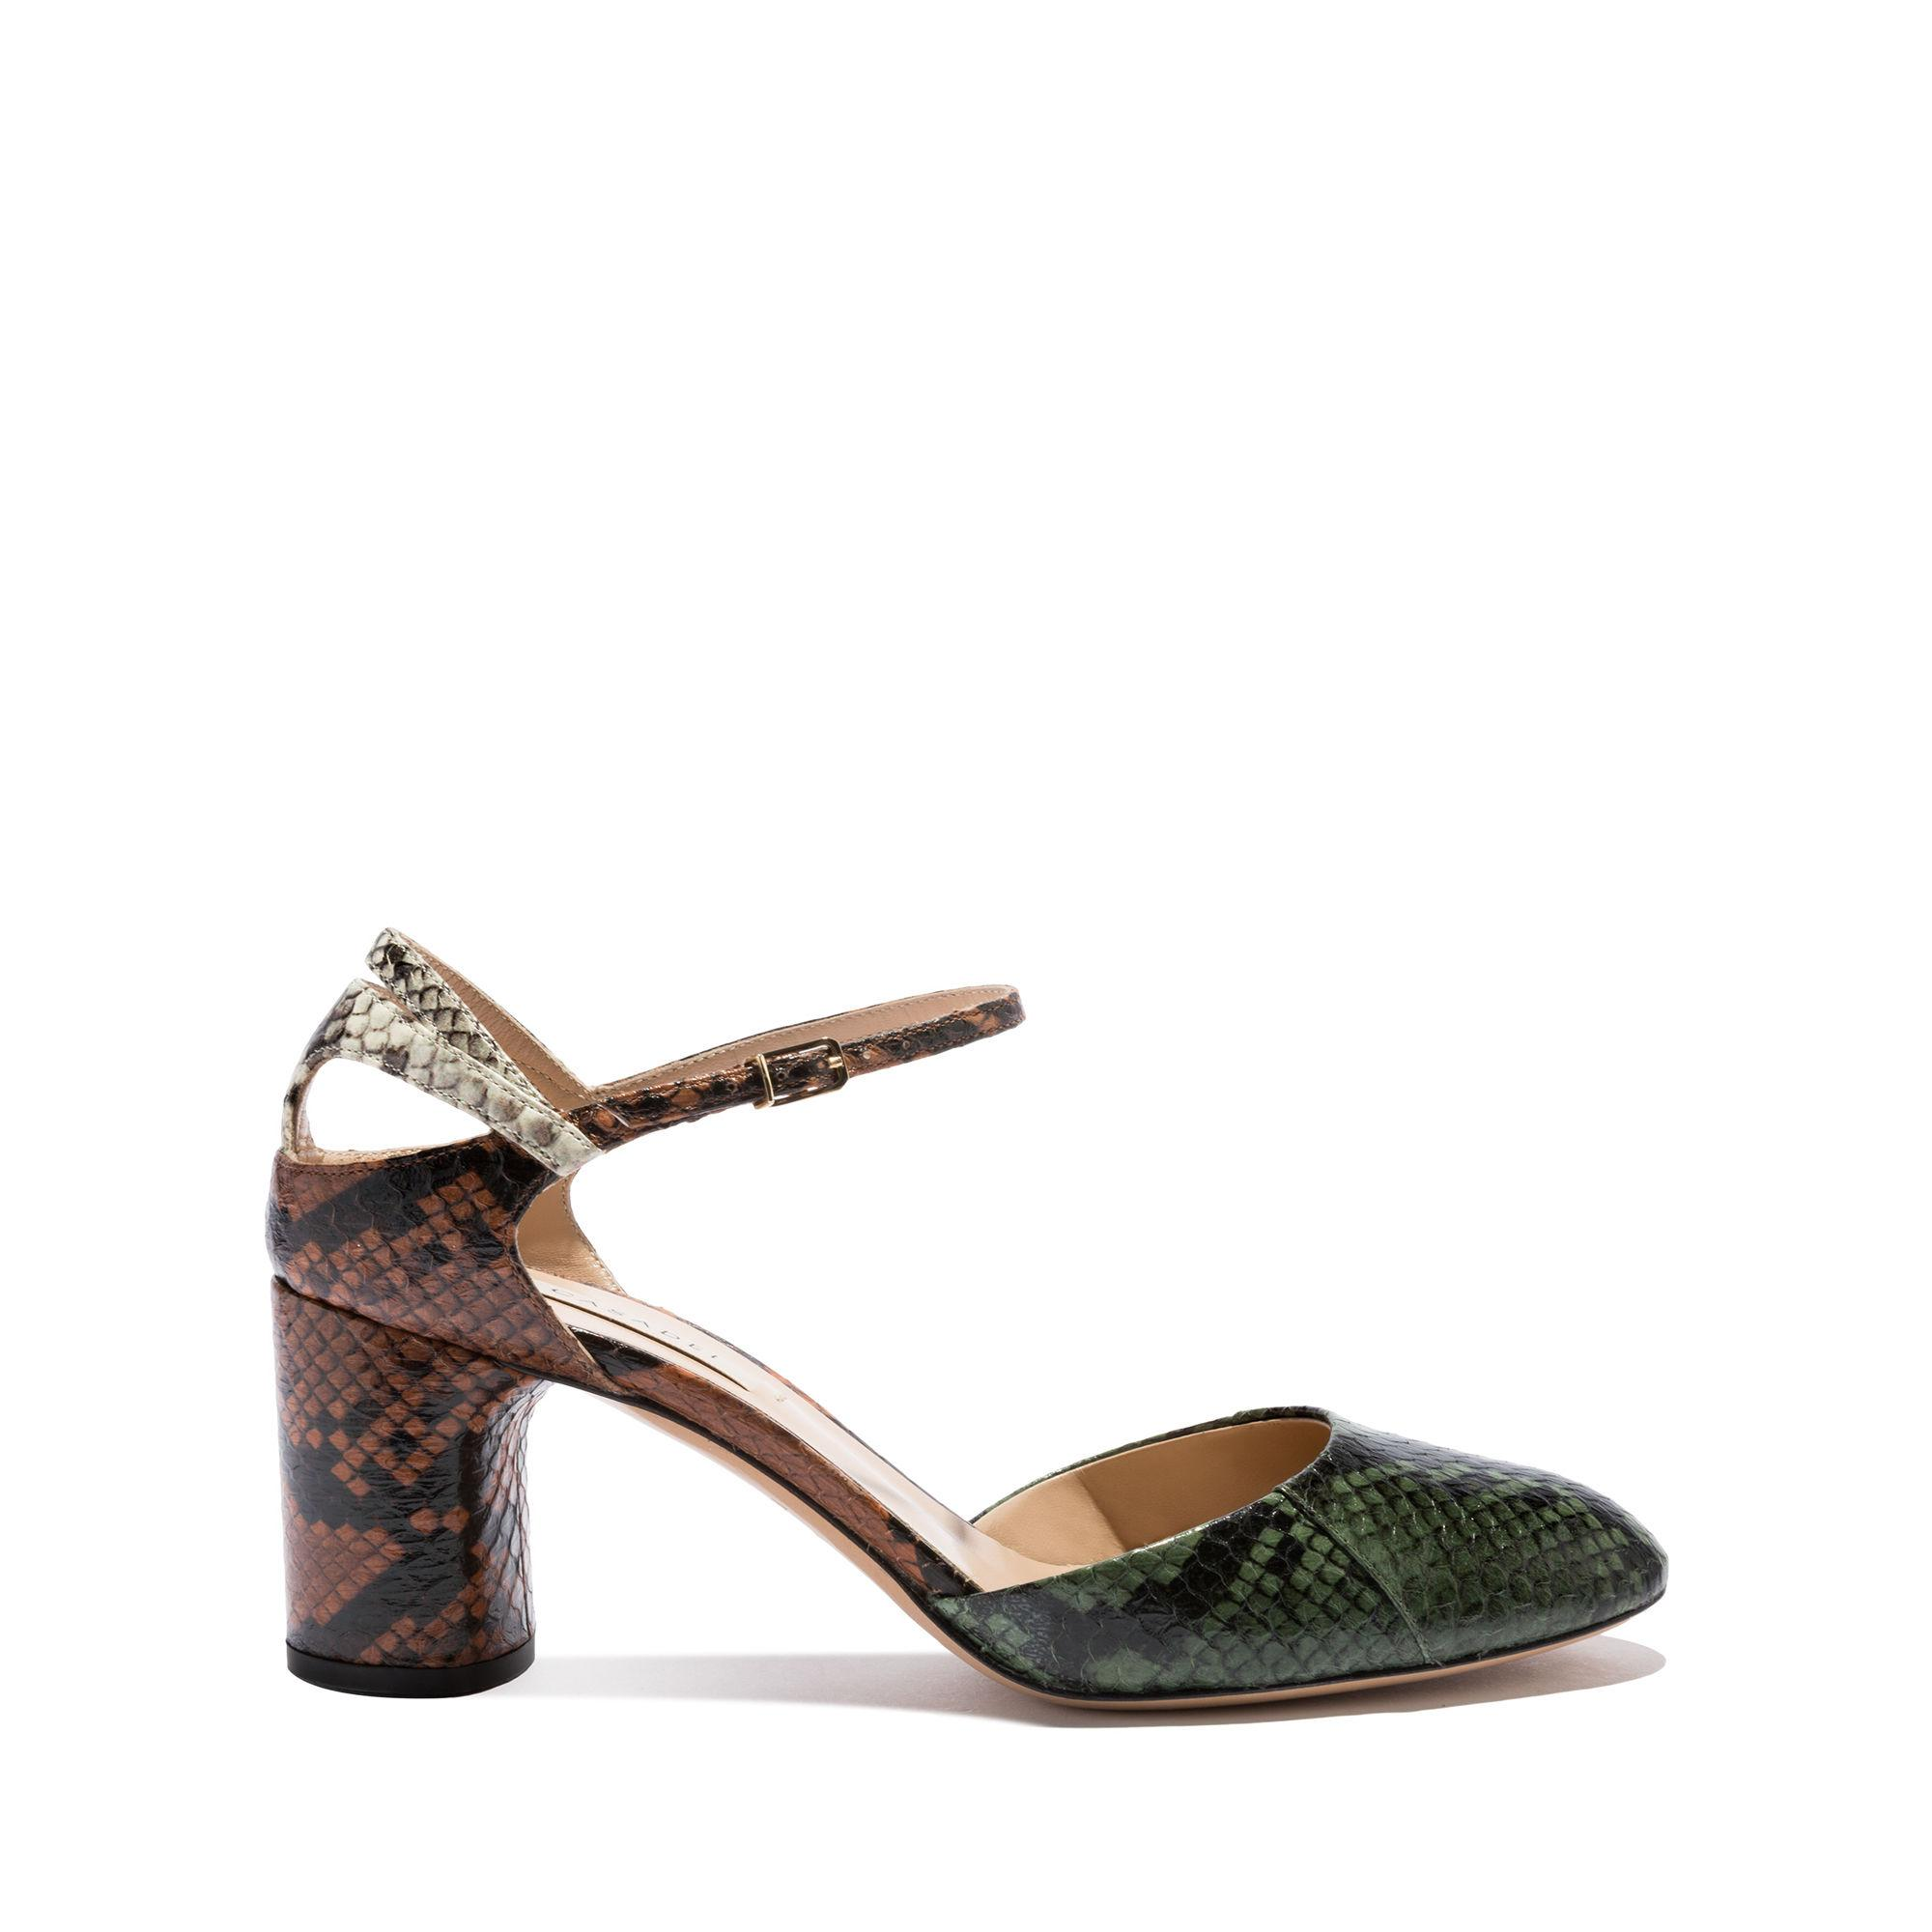 Casadei Daytime In Kombu Green, Cuoio And Stone